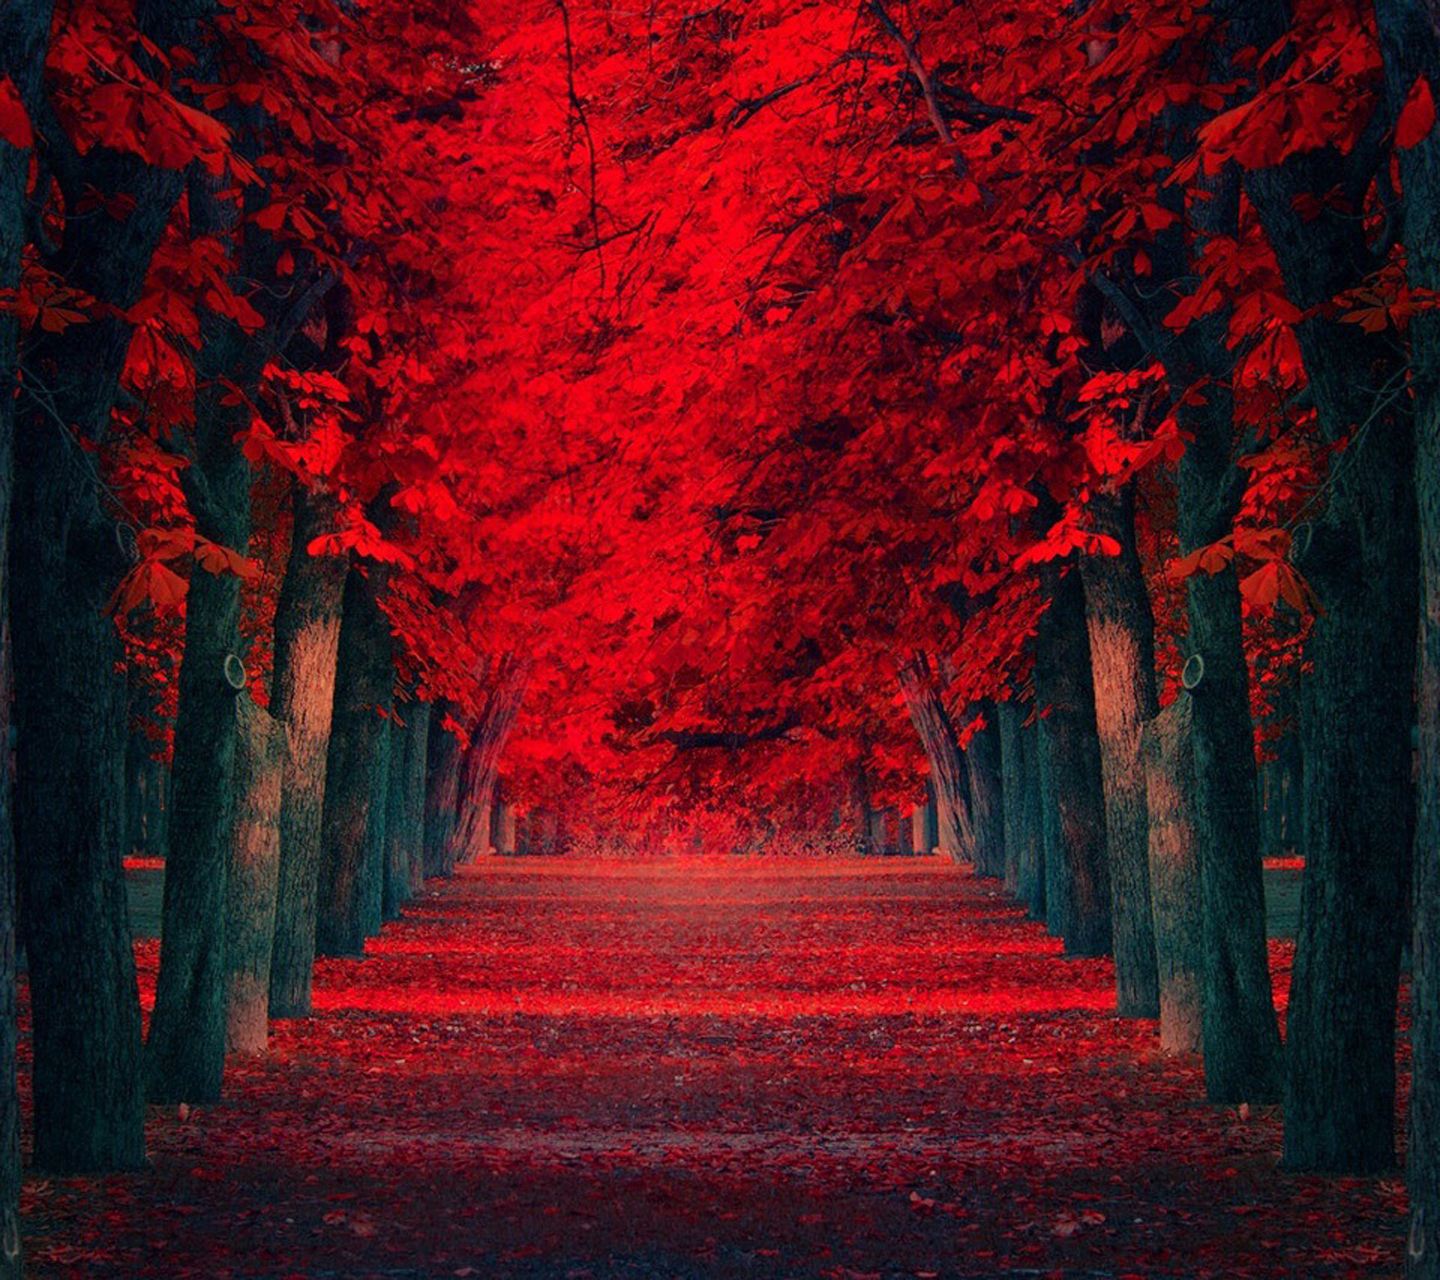 Nature: Red Nature Wallpaper